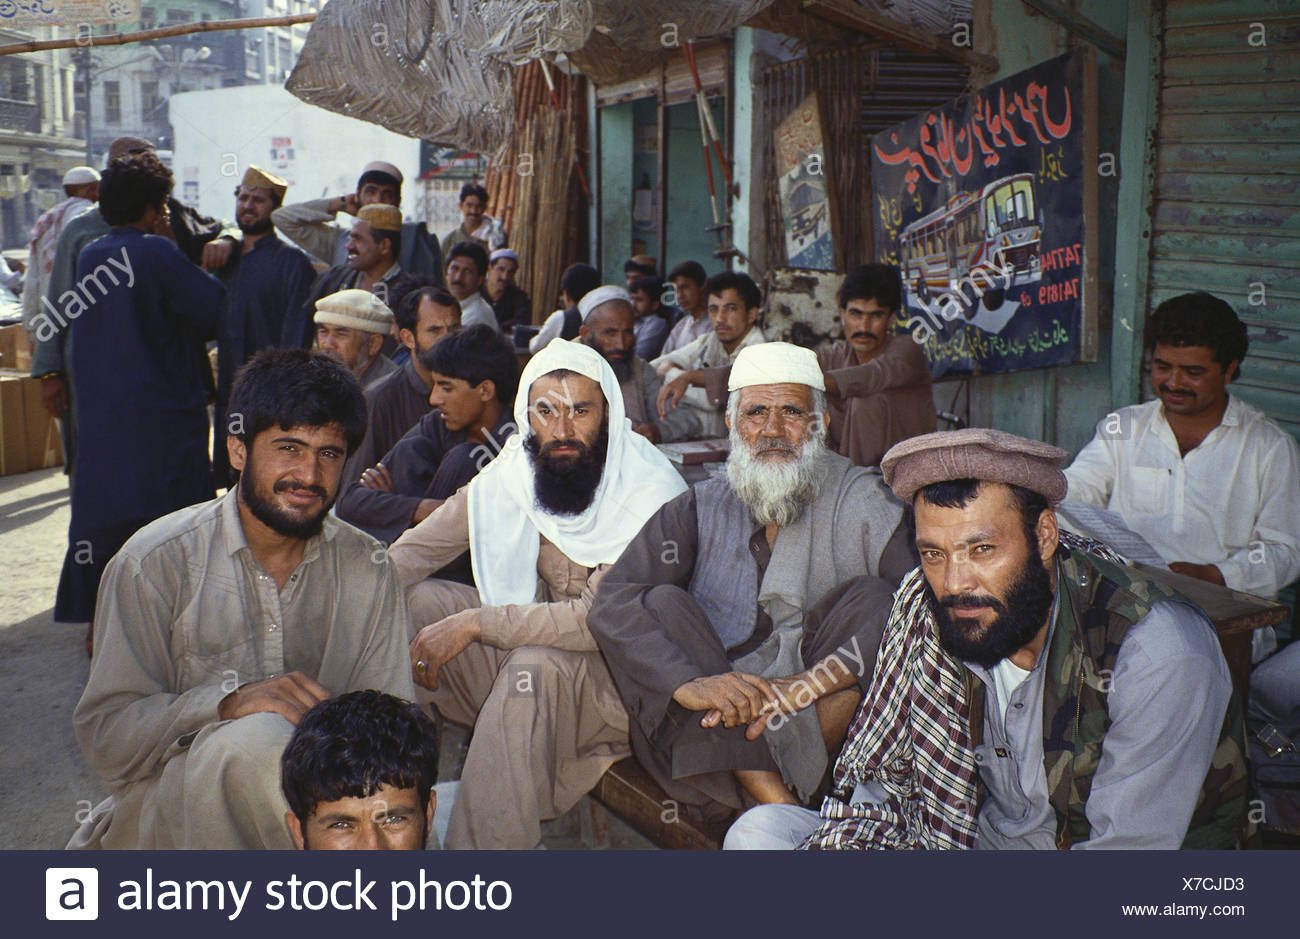 Pakistan,Belutschistan,Quetta,men,Mujaheddin,in Afghan manner,group picture,no model release,Asia,person,locals,clothes,headgear,traditionally,beards,religious fighters,Islam,islamist,Muslims,outside, - Stock Image